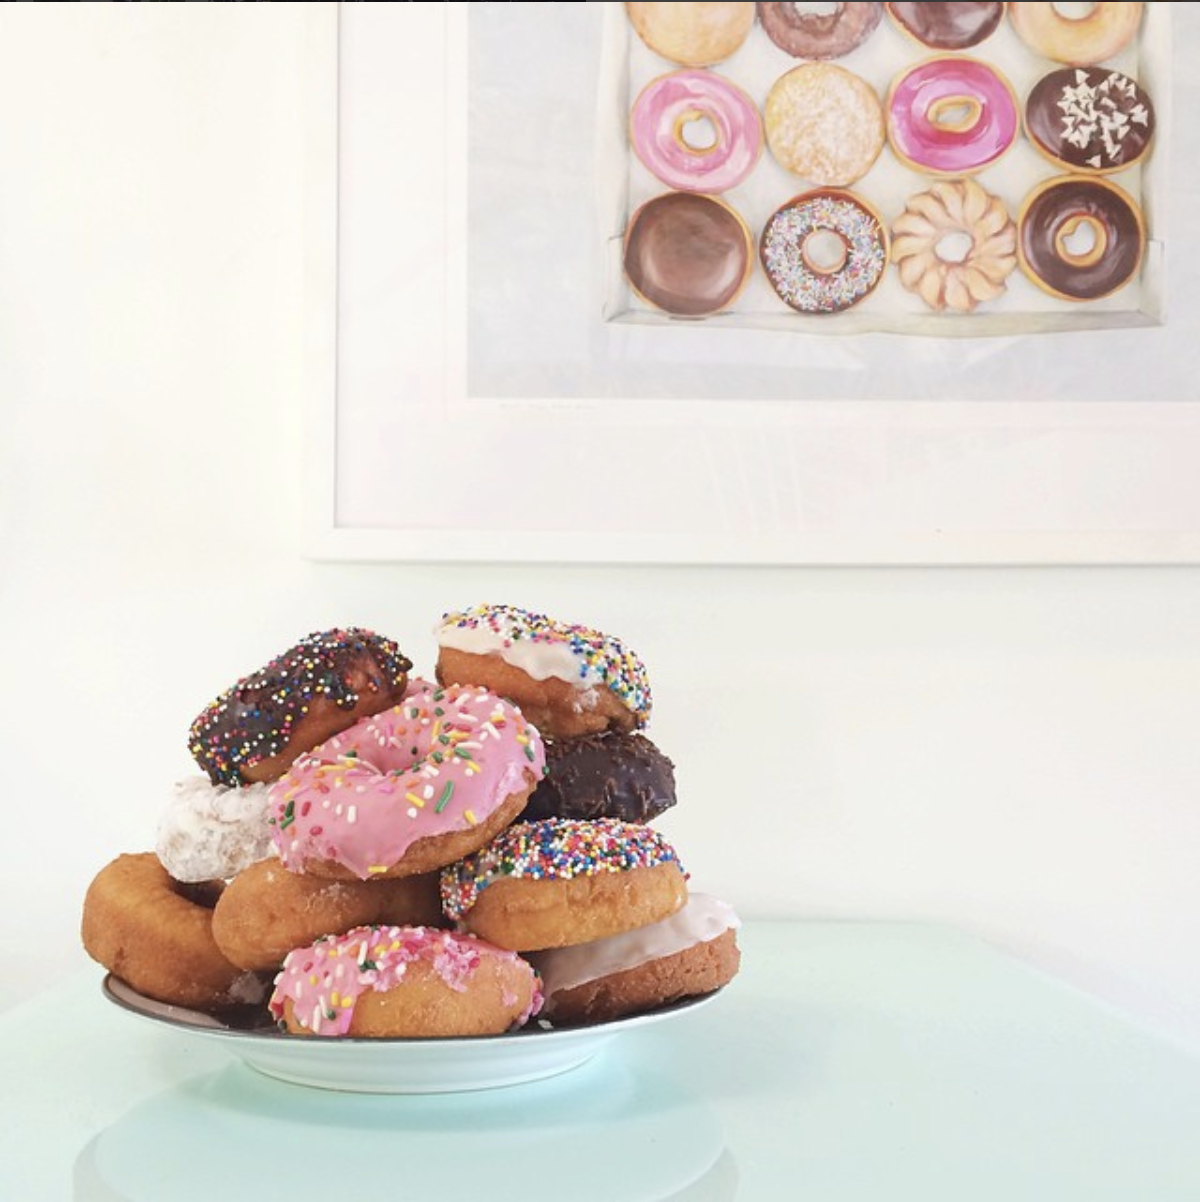 This photo of donuts was my most popular photo on  Instagram  in 2014. I took it with an iPhone.